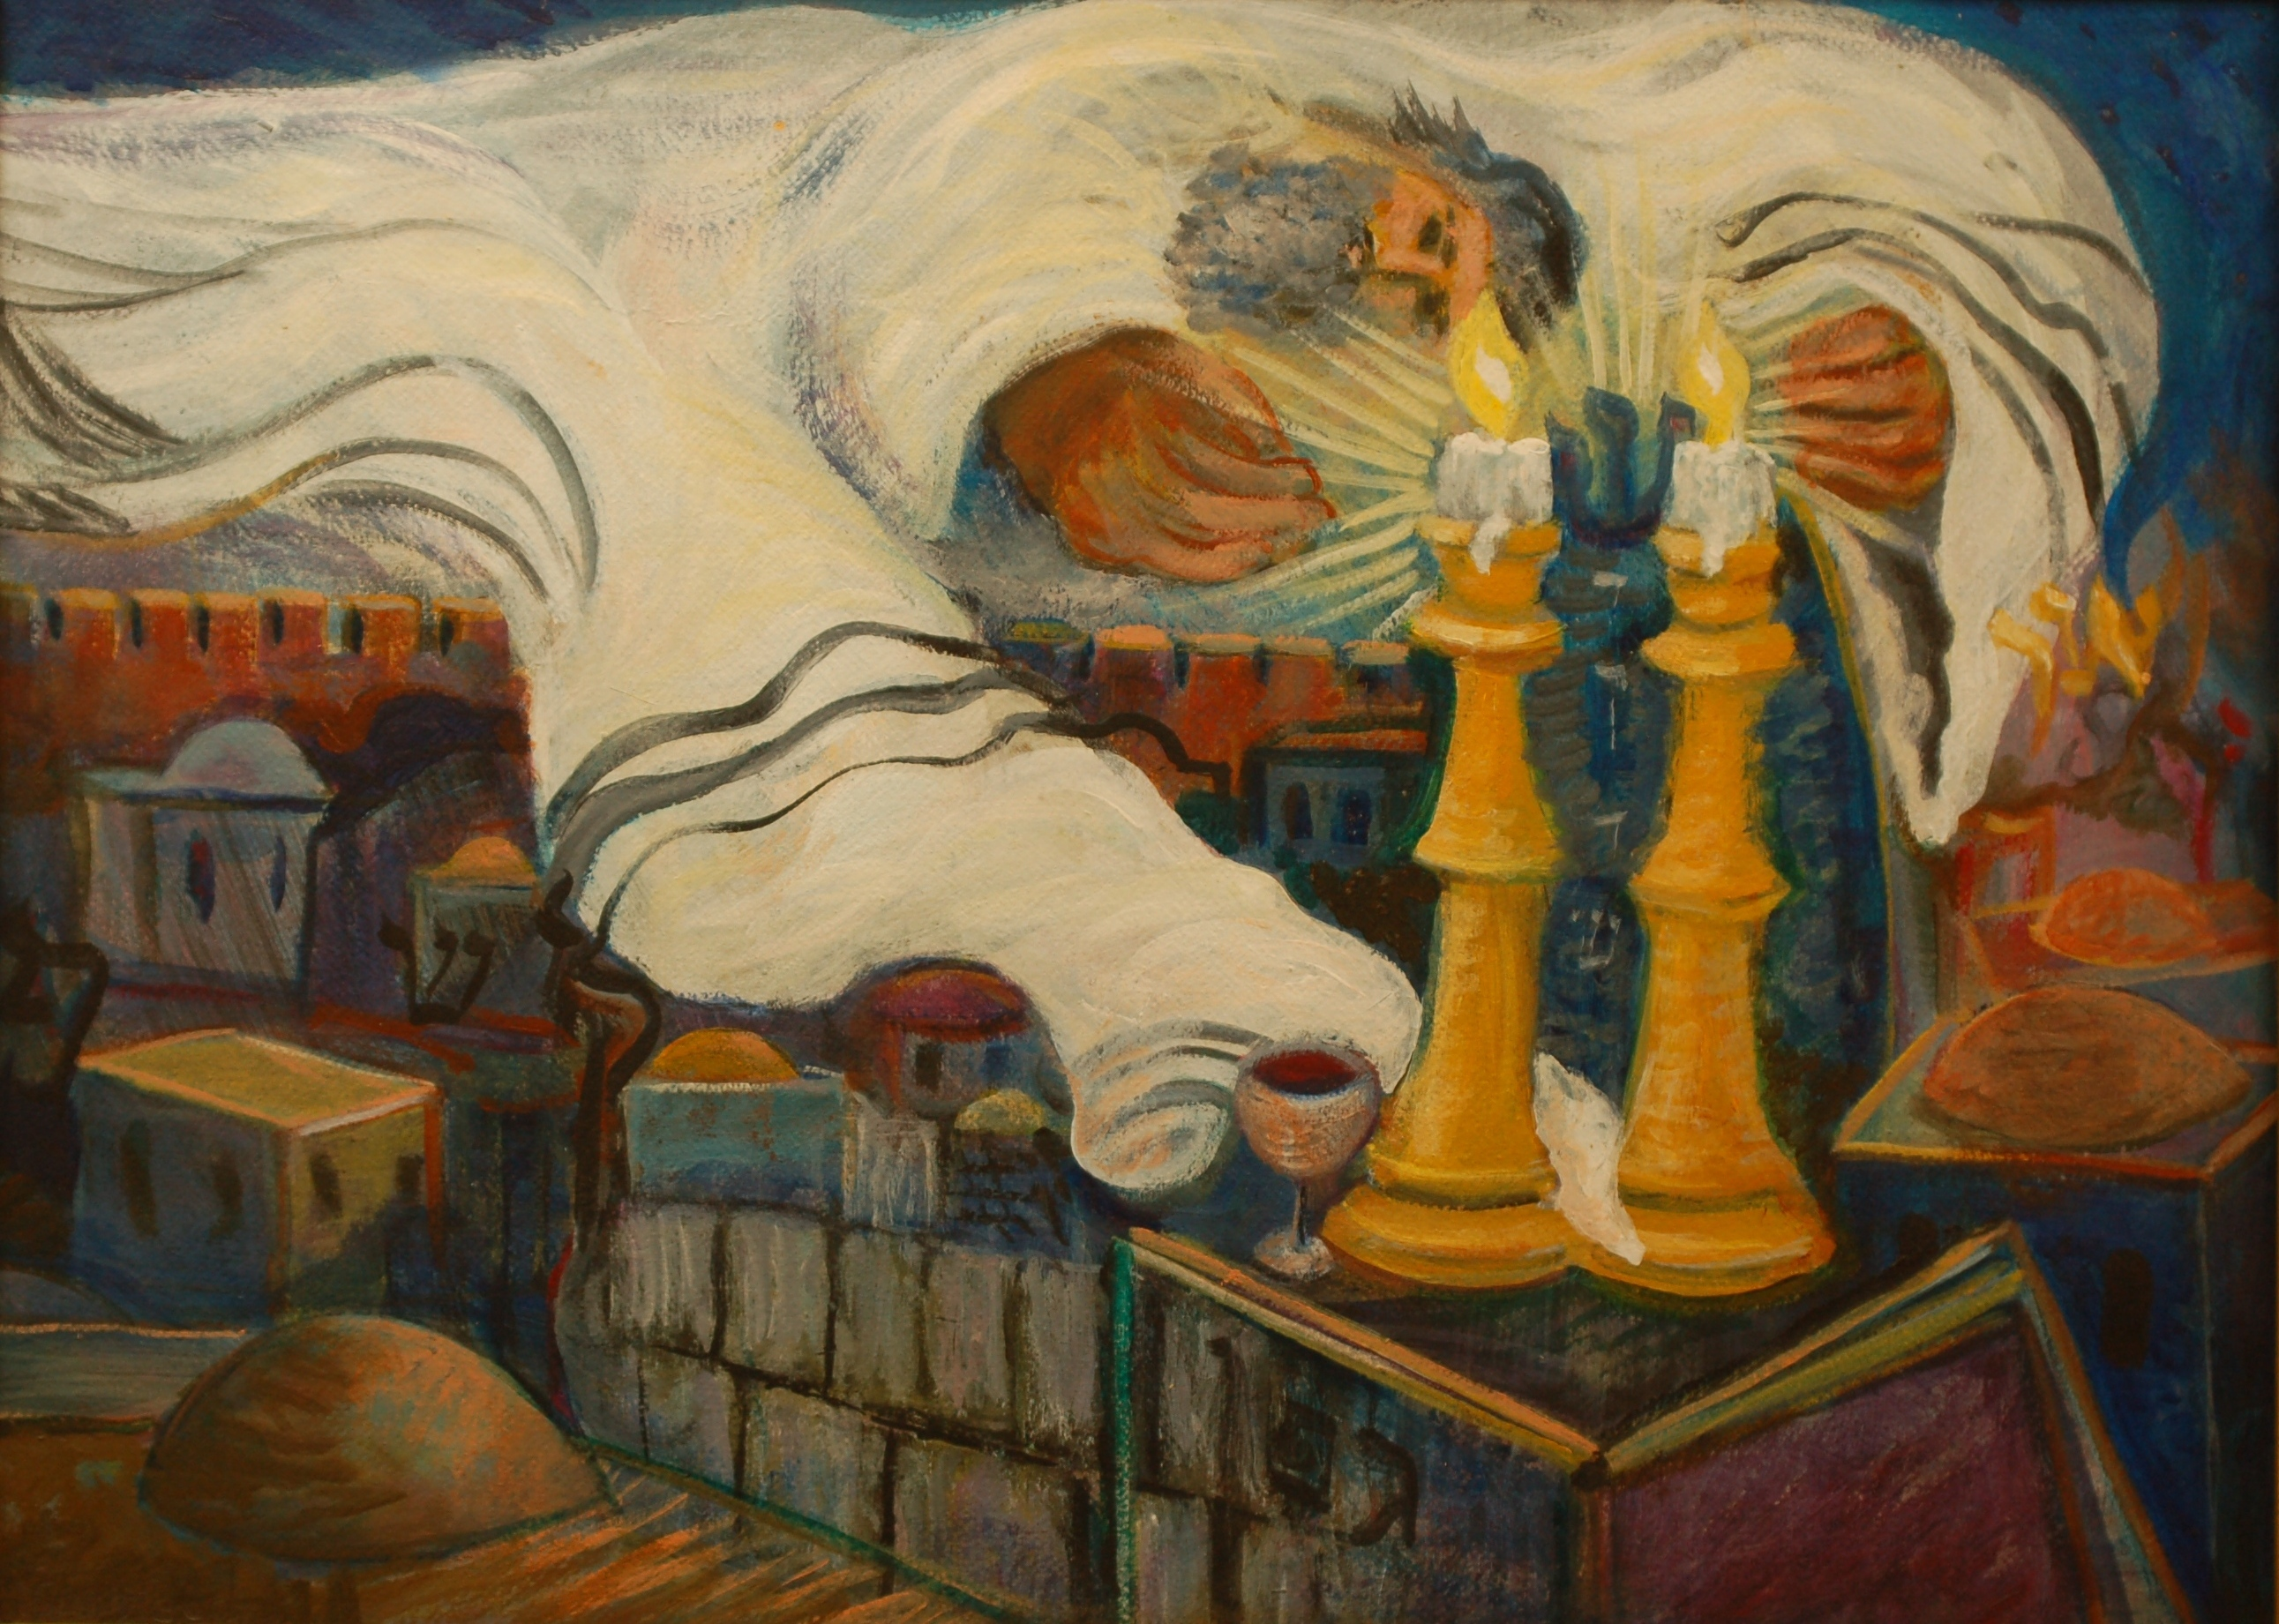 Kabalat Shabbat (The Receiving of the Shabbat)